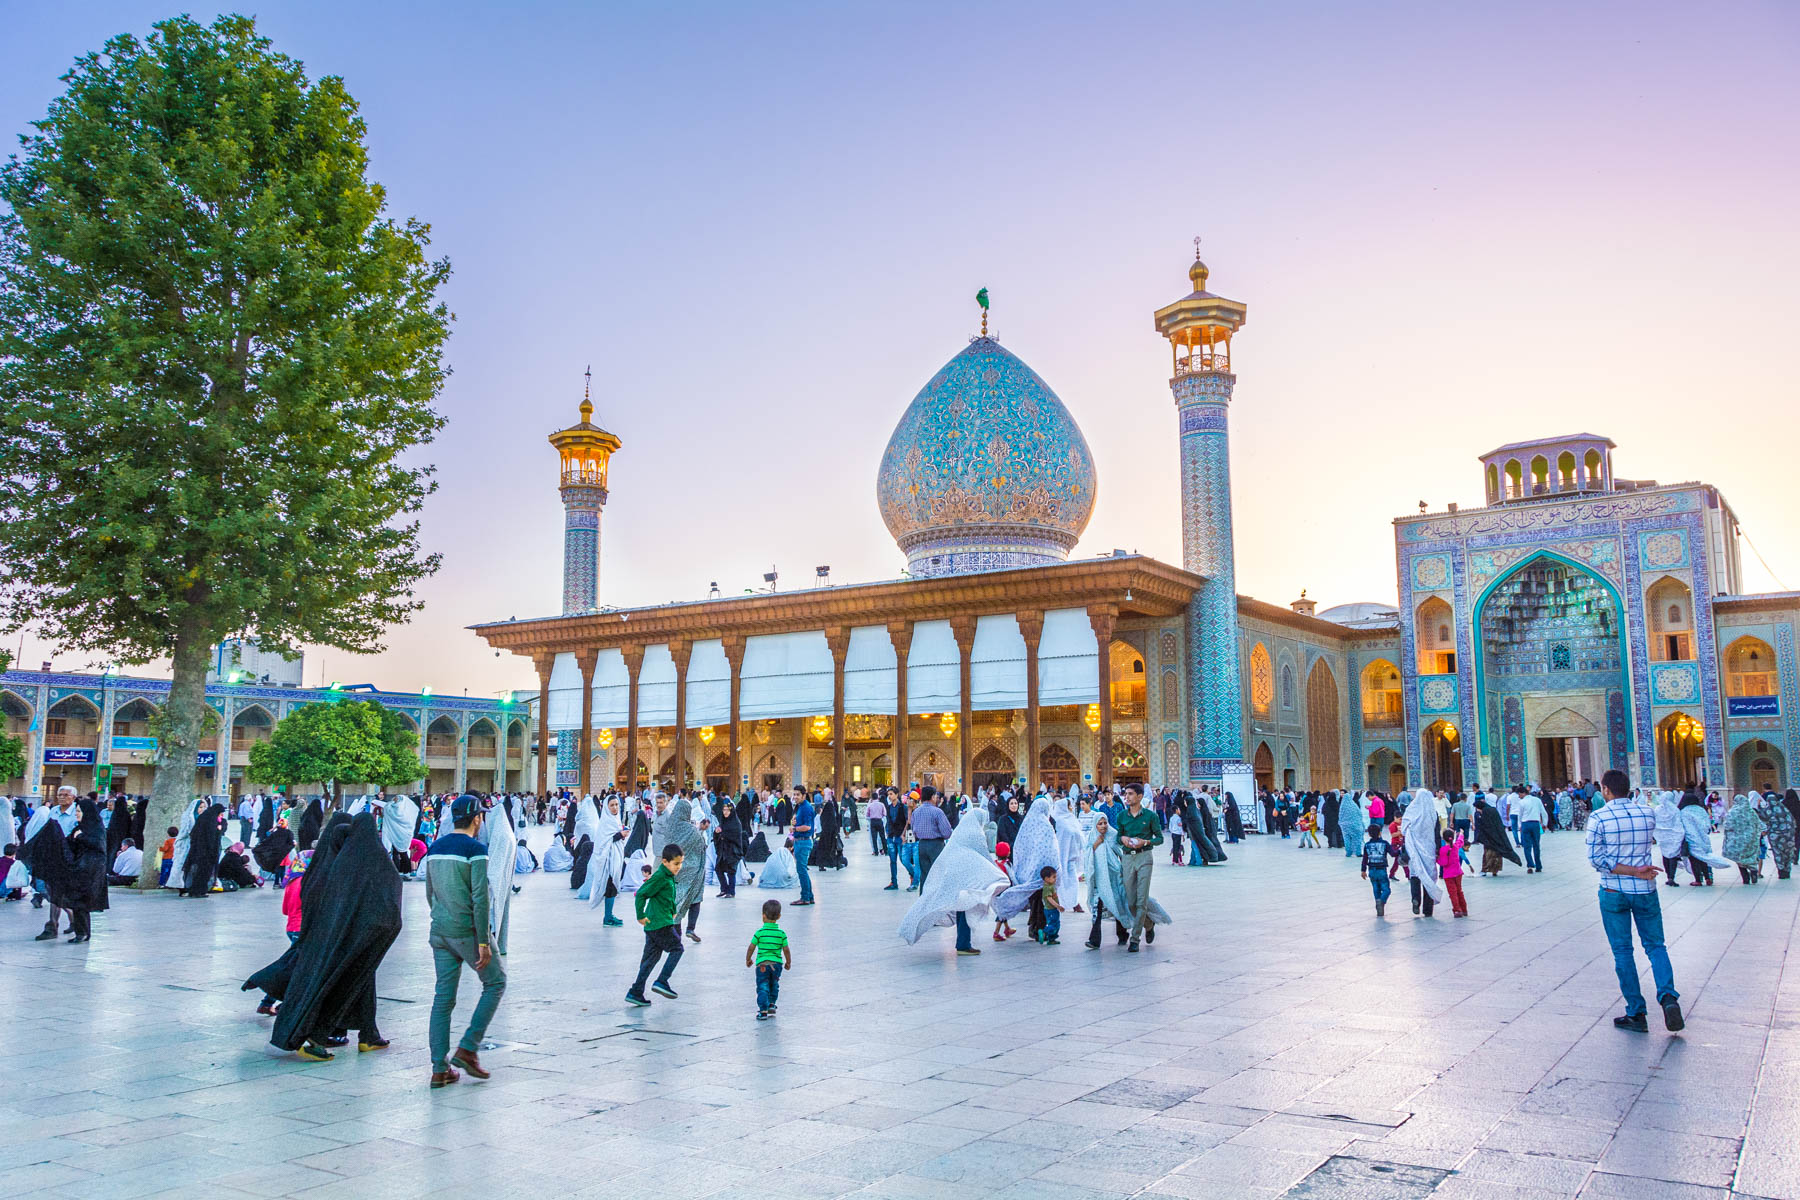 Women's travel tips for Iran: where to enter mosques and shrines.